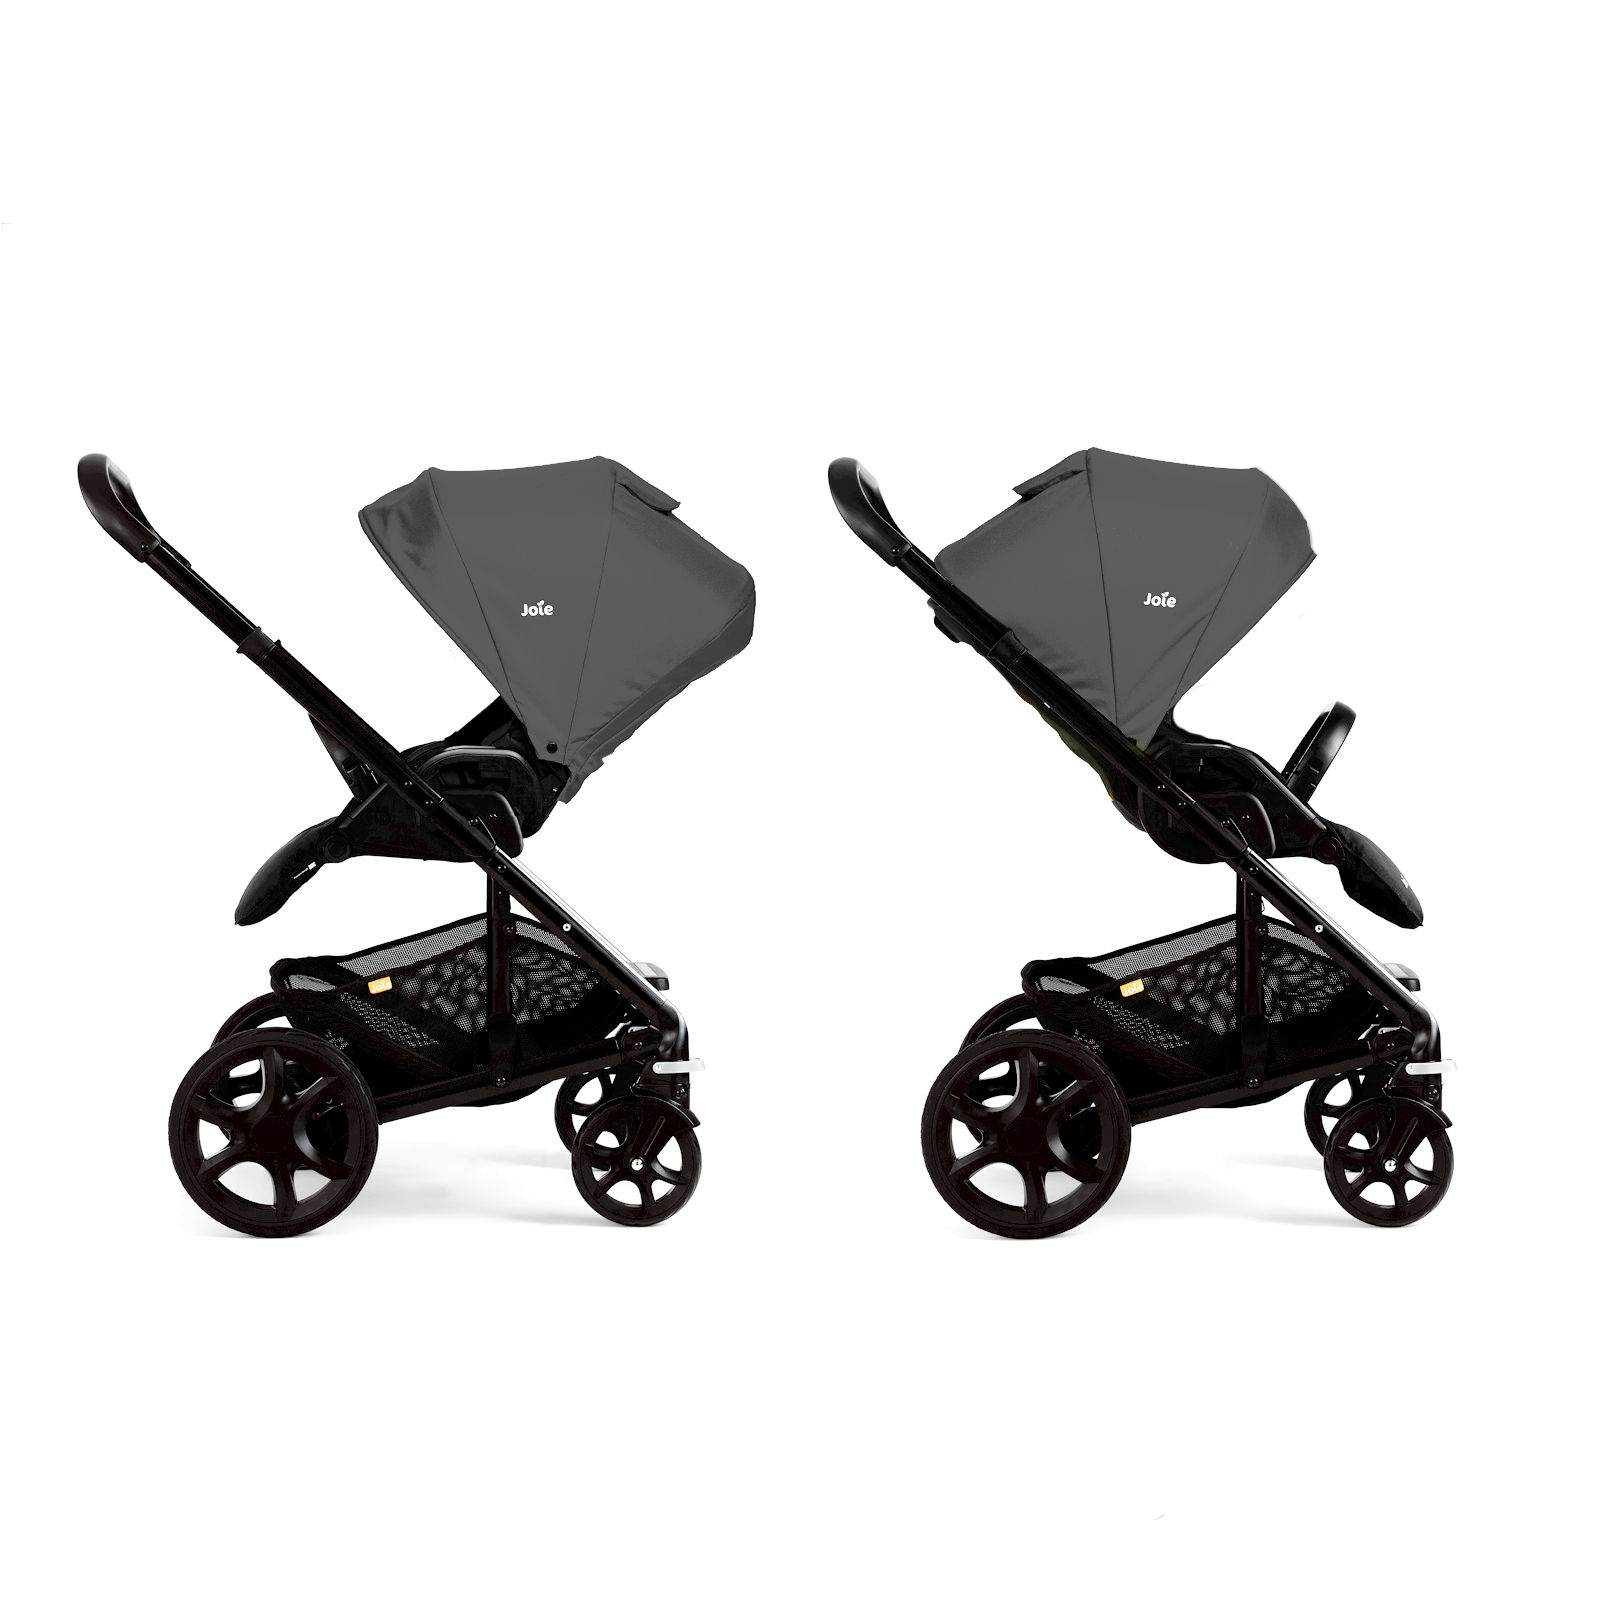 Travel System Joie Chrome Joie Chrome Dlx Travel System With Gemm Car Seat Carrycot Footmuff Pavement